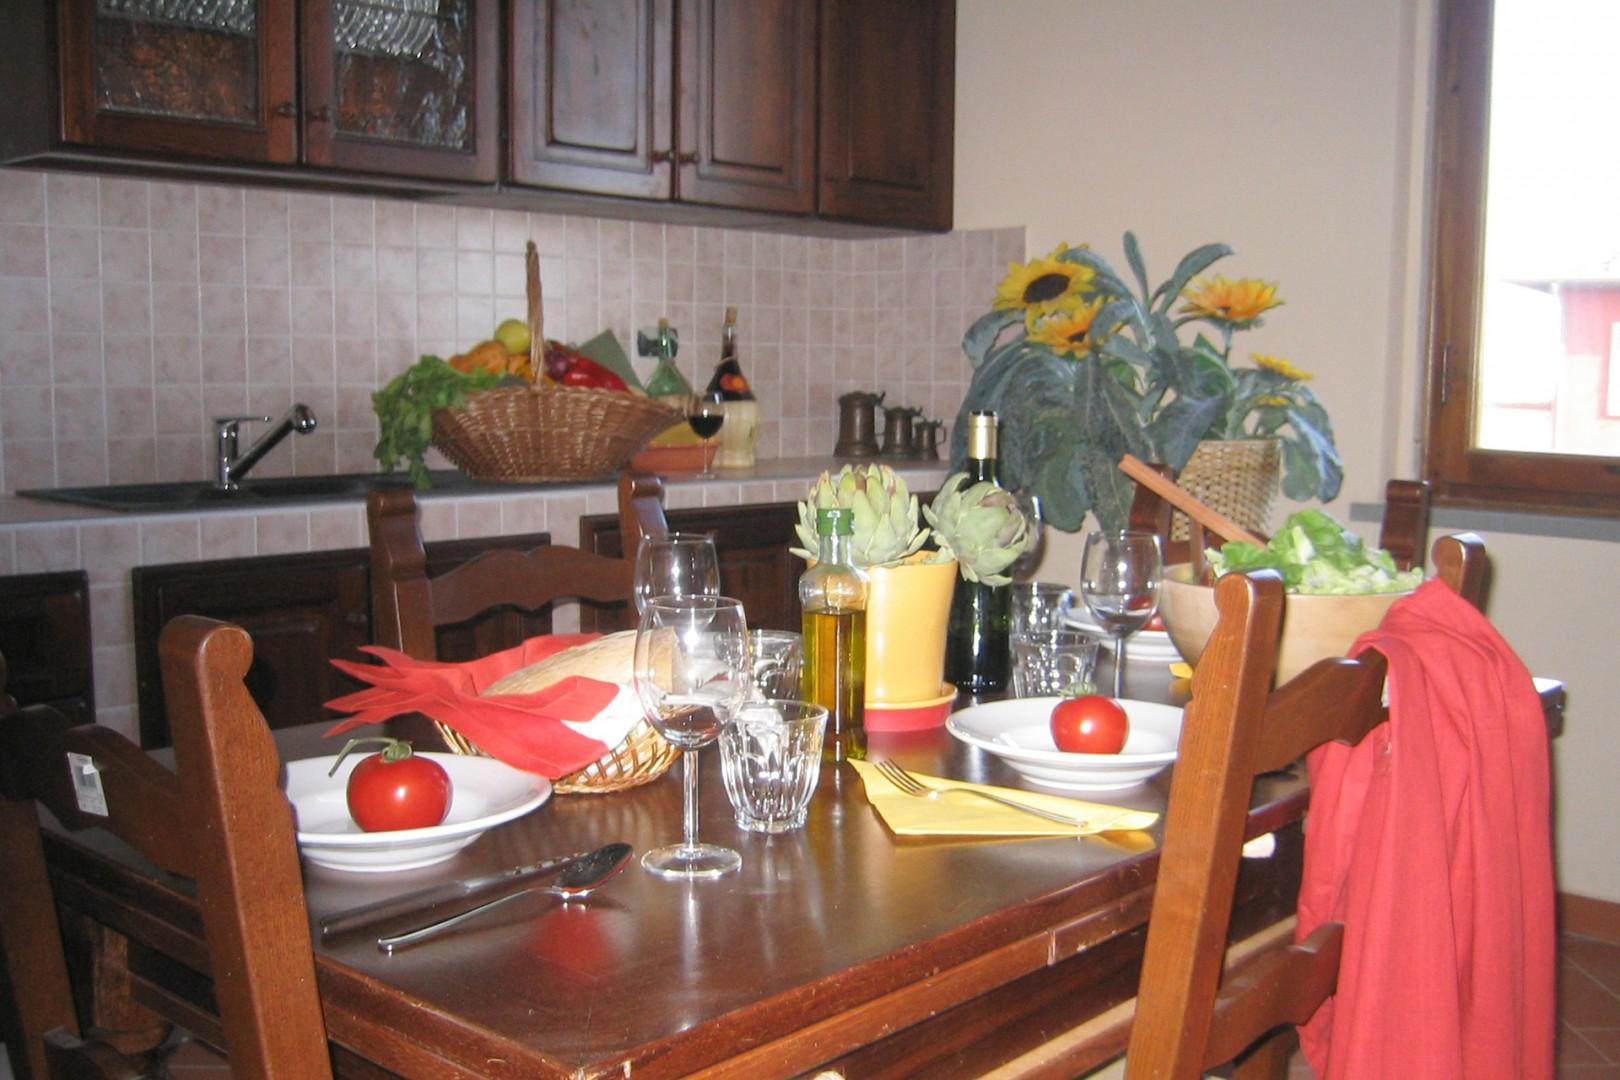 The warm and welcoming eat-in kitchen has a large countertop, the latest applicances and a grill.